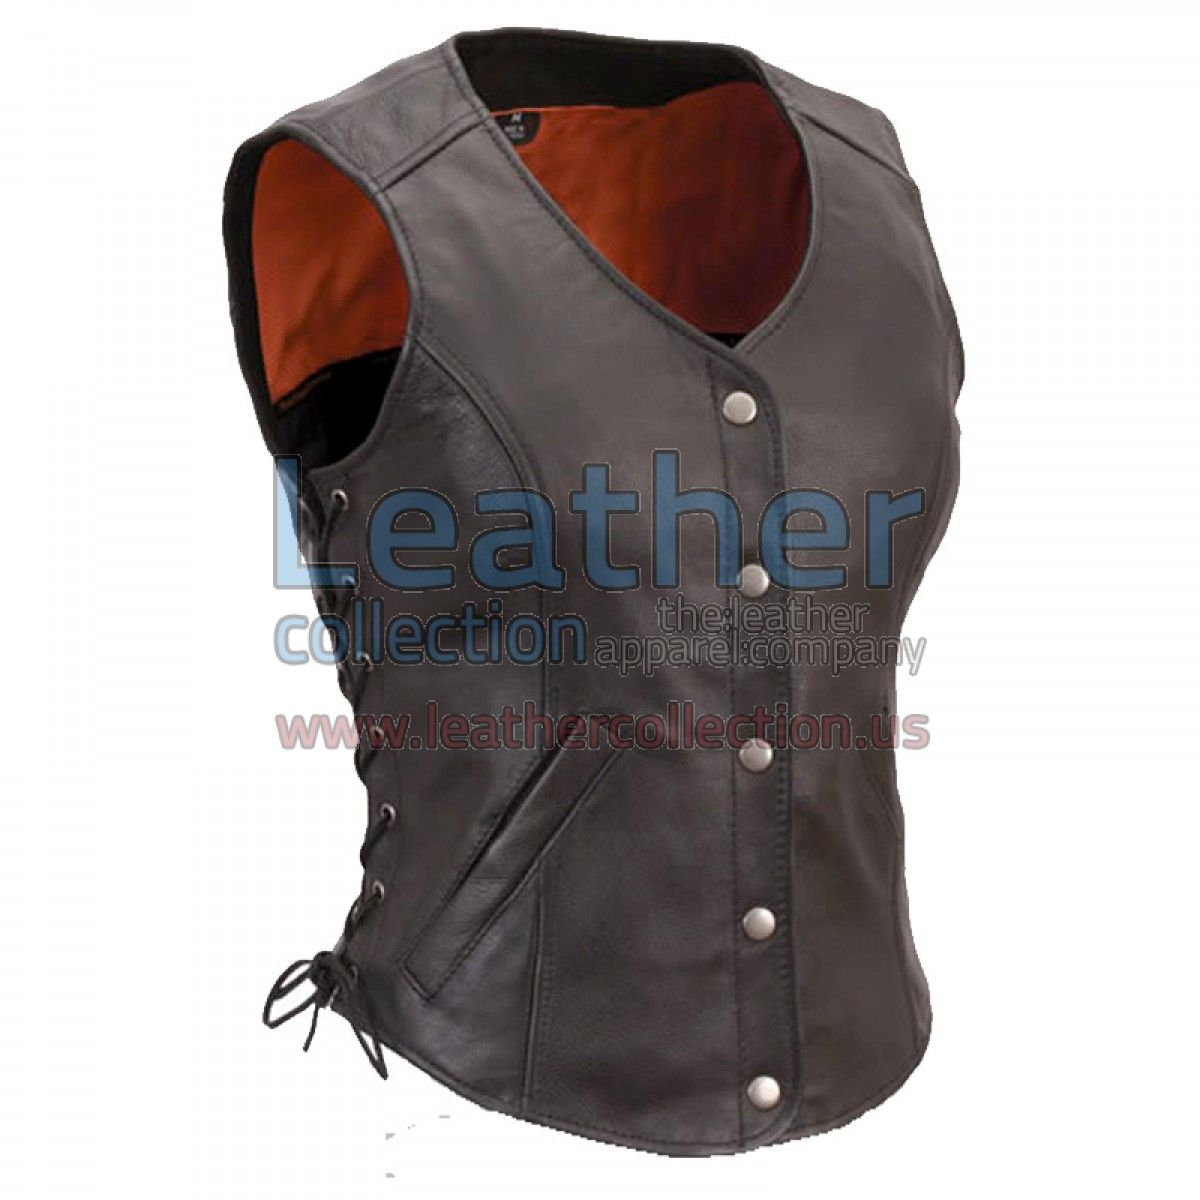 Long Length Motorcycle Vest with Side Laces, is made of Genuine Leather, it's a light weight fitted Leather vest for a sleek, Stylish, hot and polished look. Leather Vest features four Front Snap button, Leather Lace-up, Slip hand pockets, interior pockets and comes fully lined